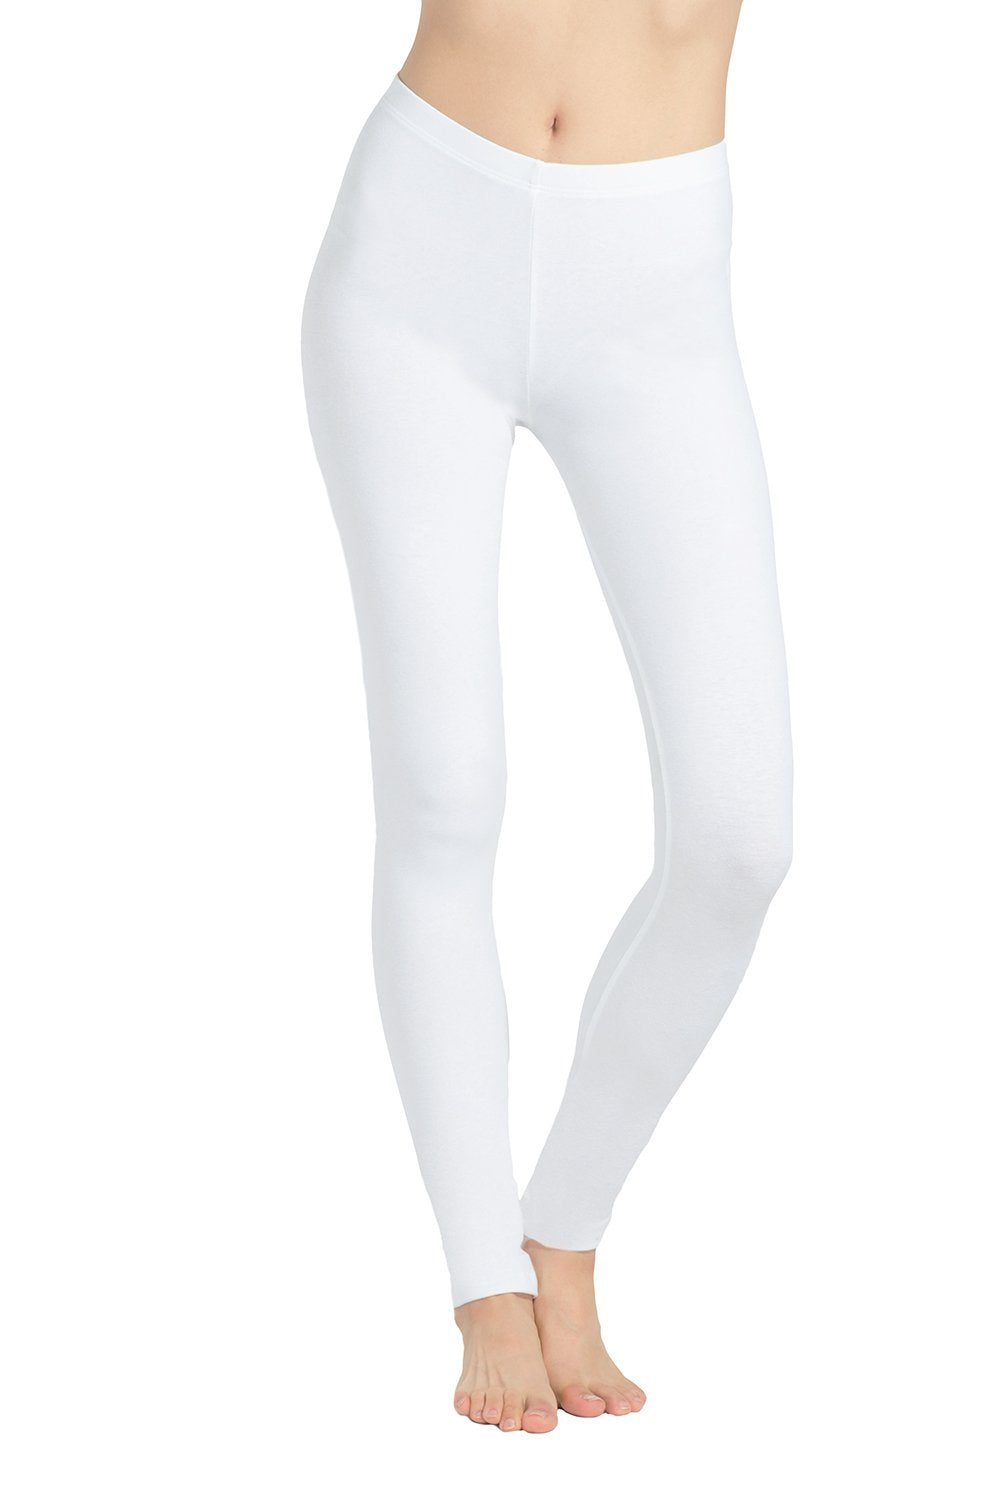 Women's Organic Cotton Balanced Lean Ankle Legging